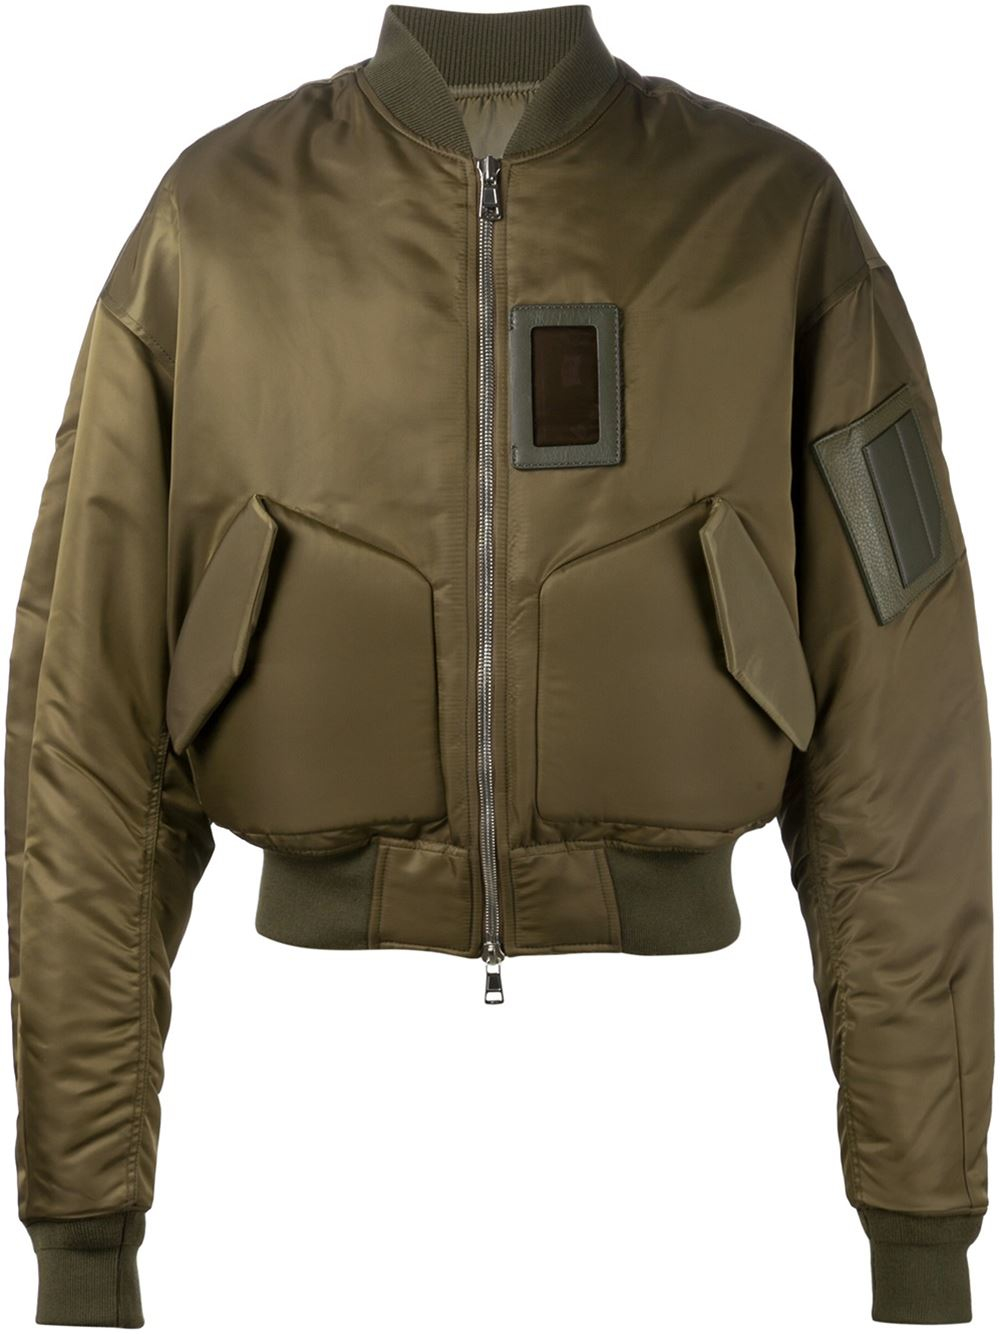 Juun.j Bomber Jacket in Natural for Men (green)